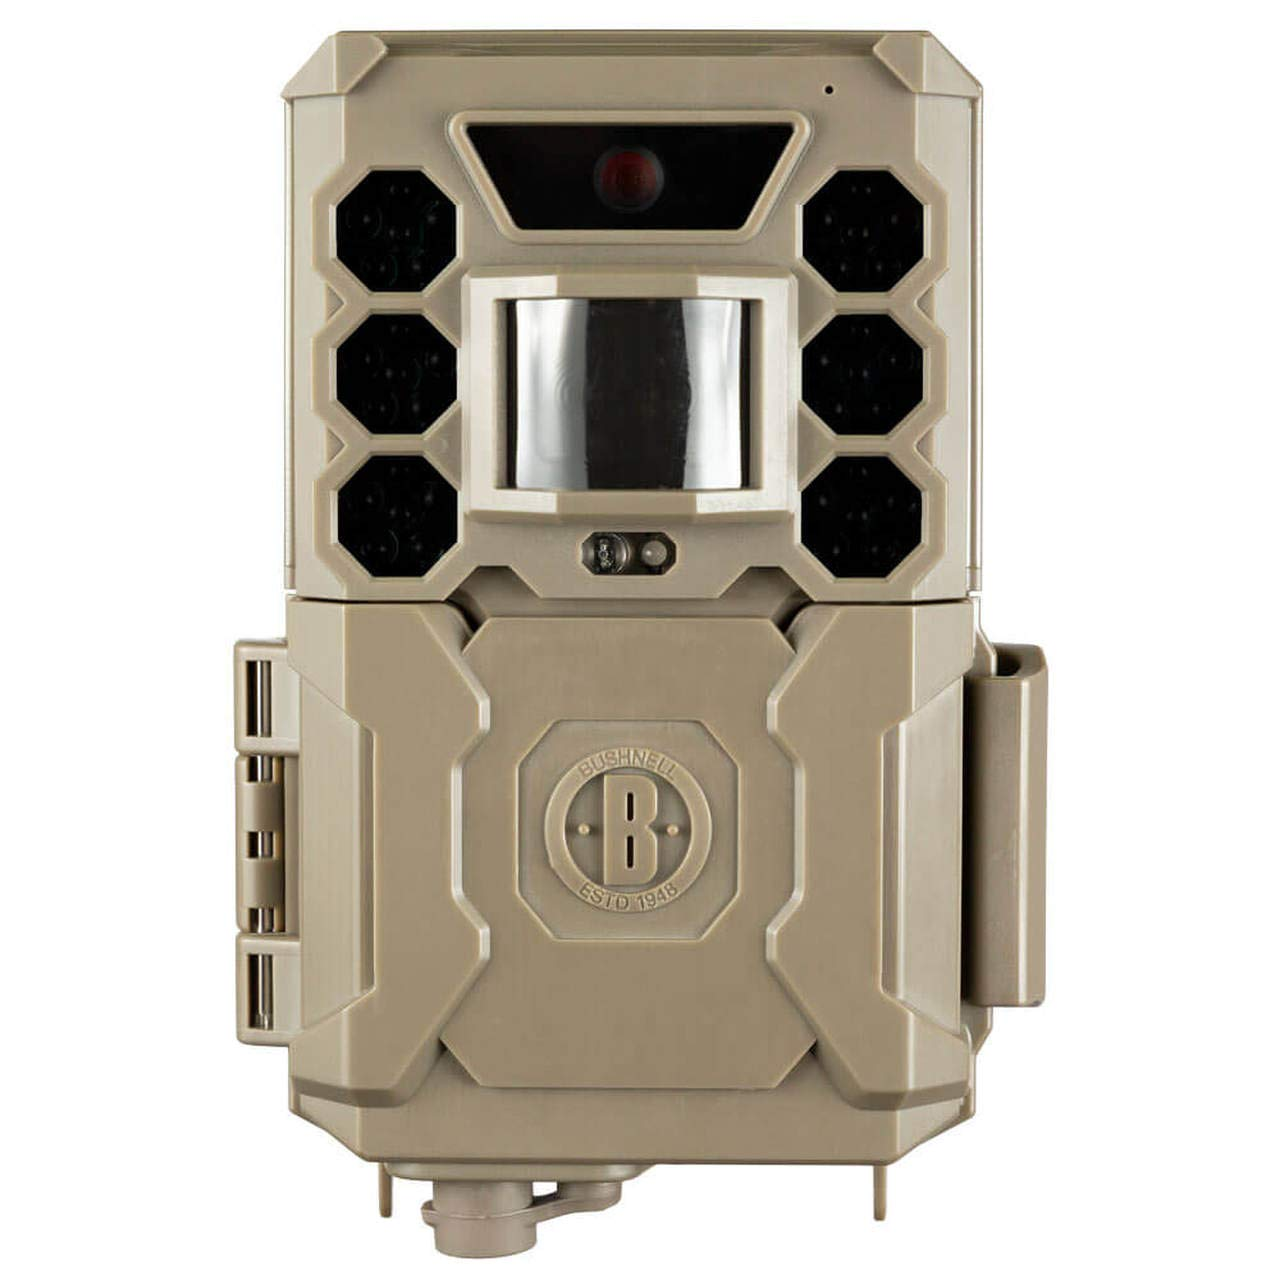 Bushnell 24MP CORE Trail Camera, Single Sensor, no Glow_119938C